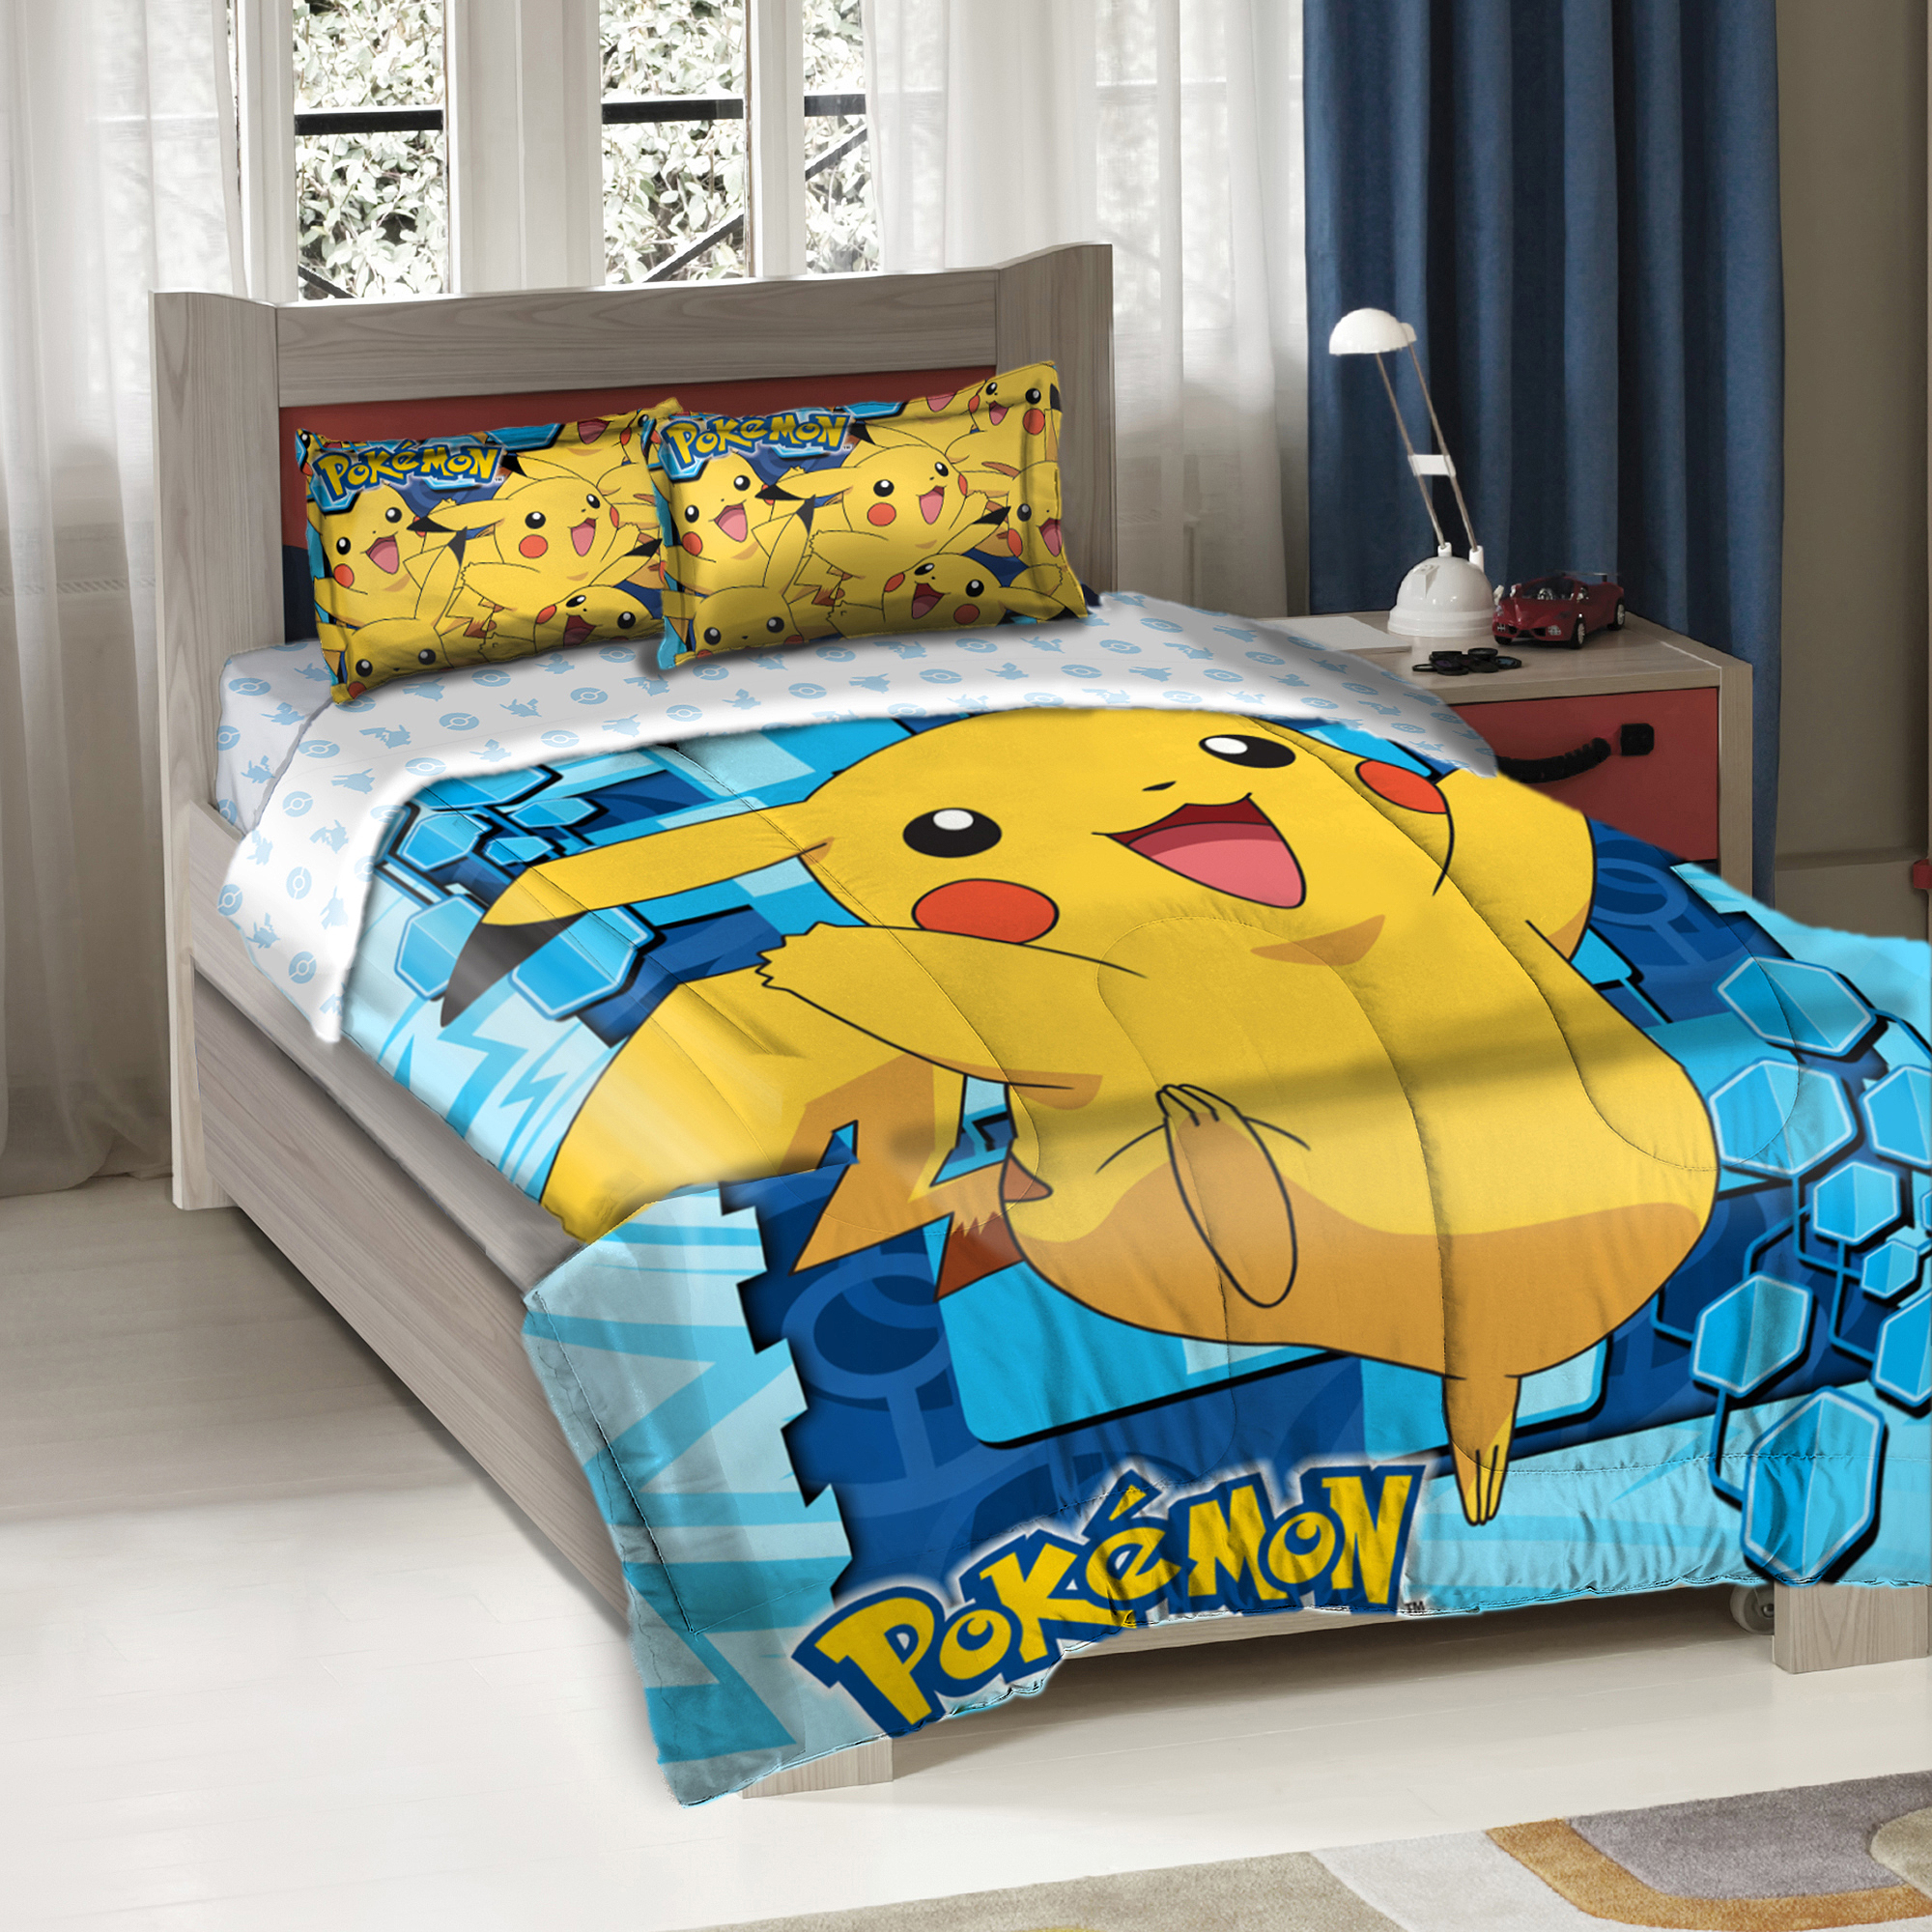 Kids  Bedding. Bedding Sets   Walmart com